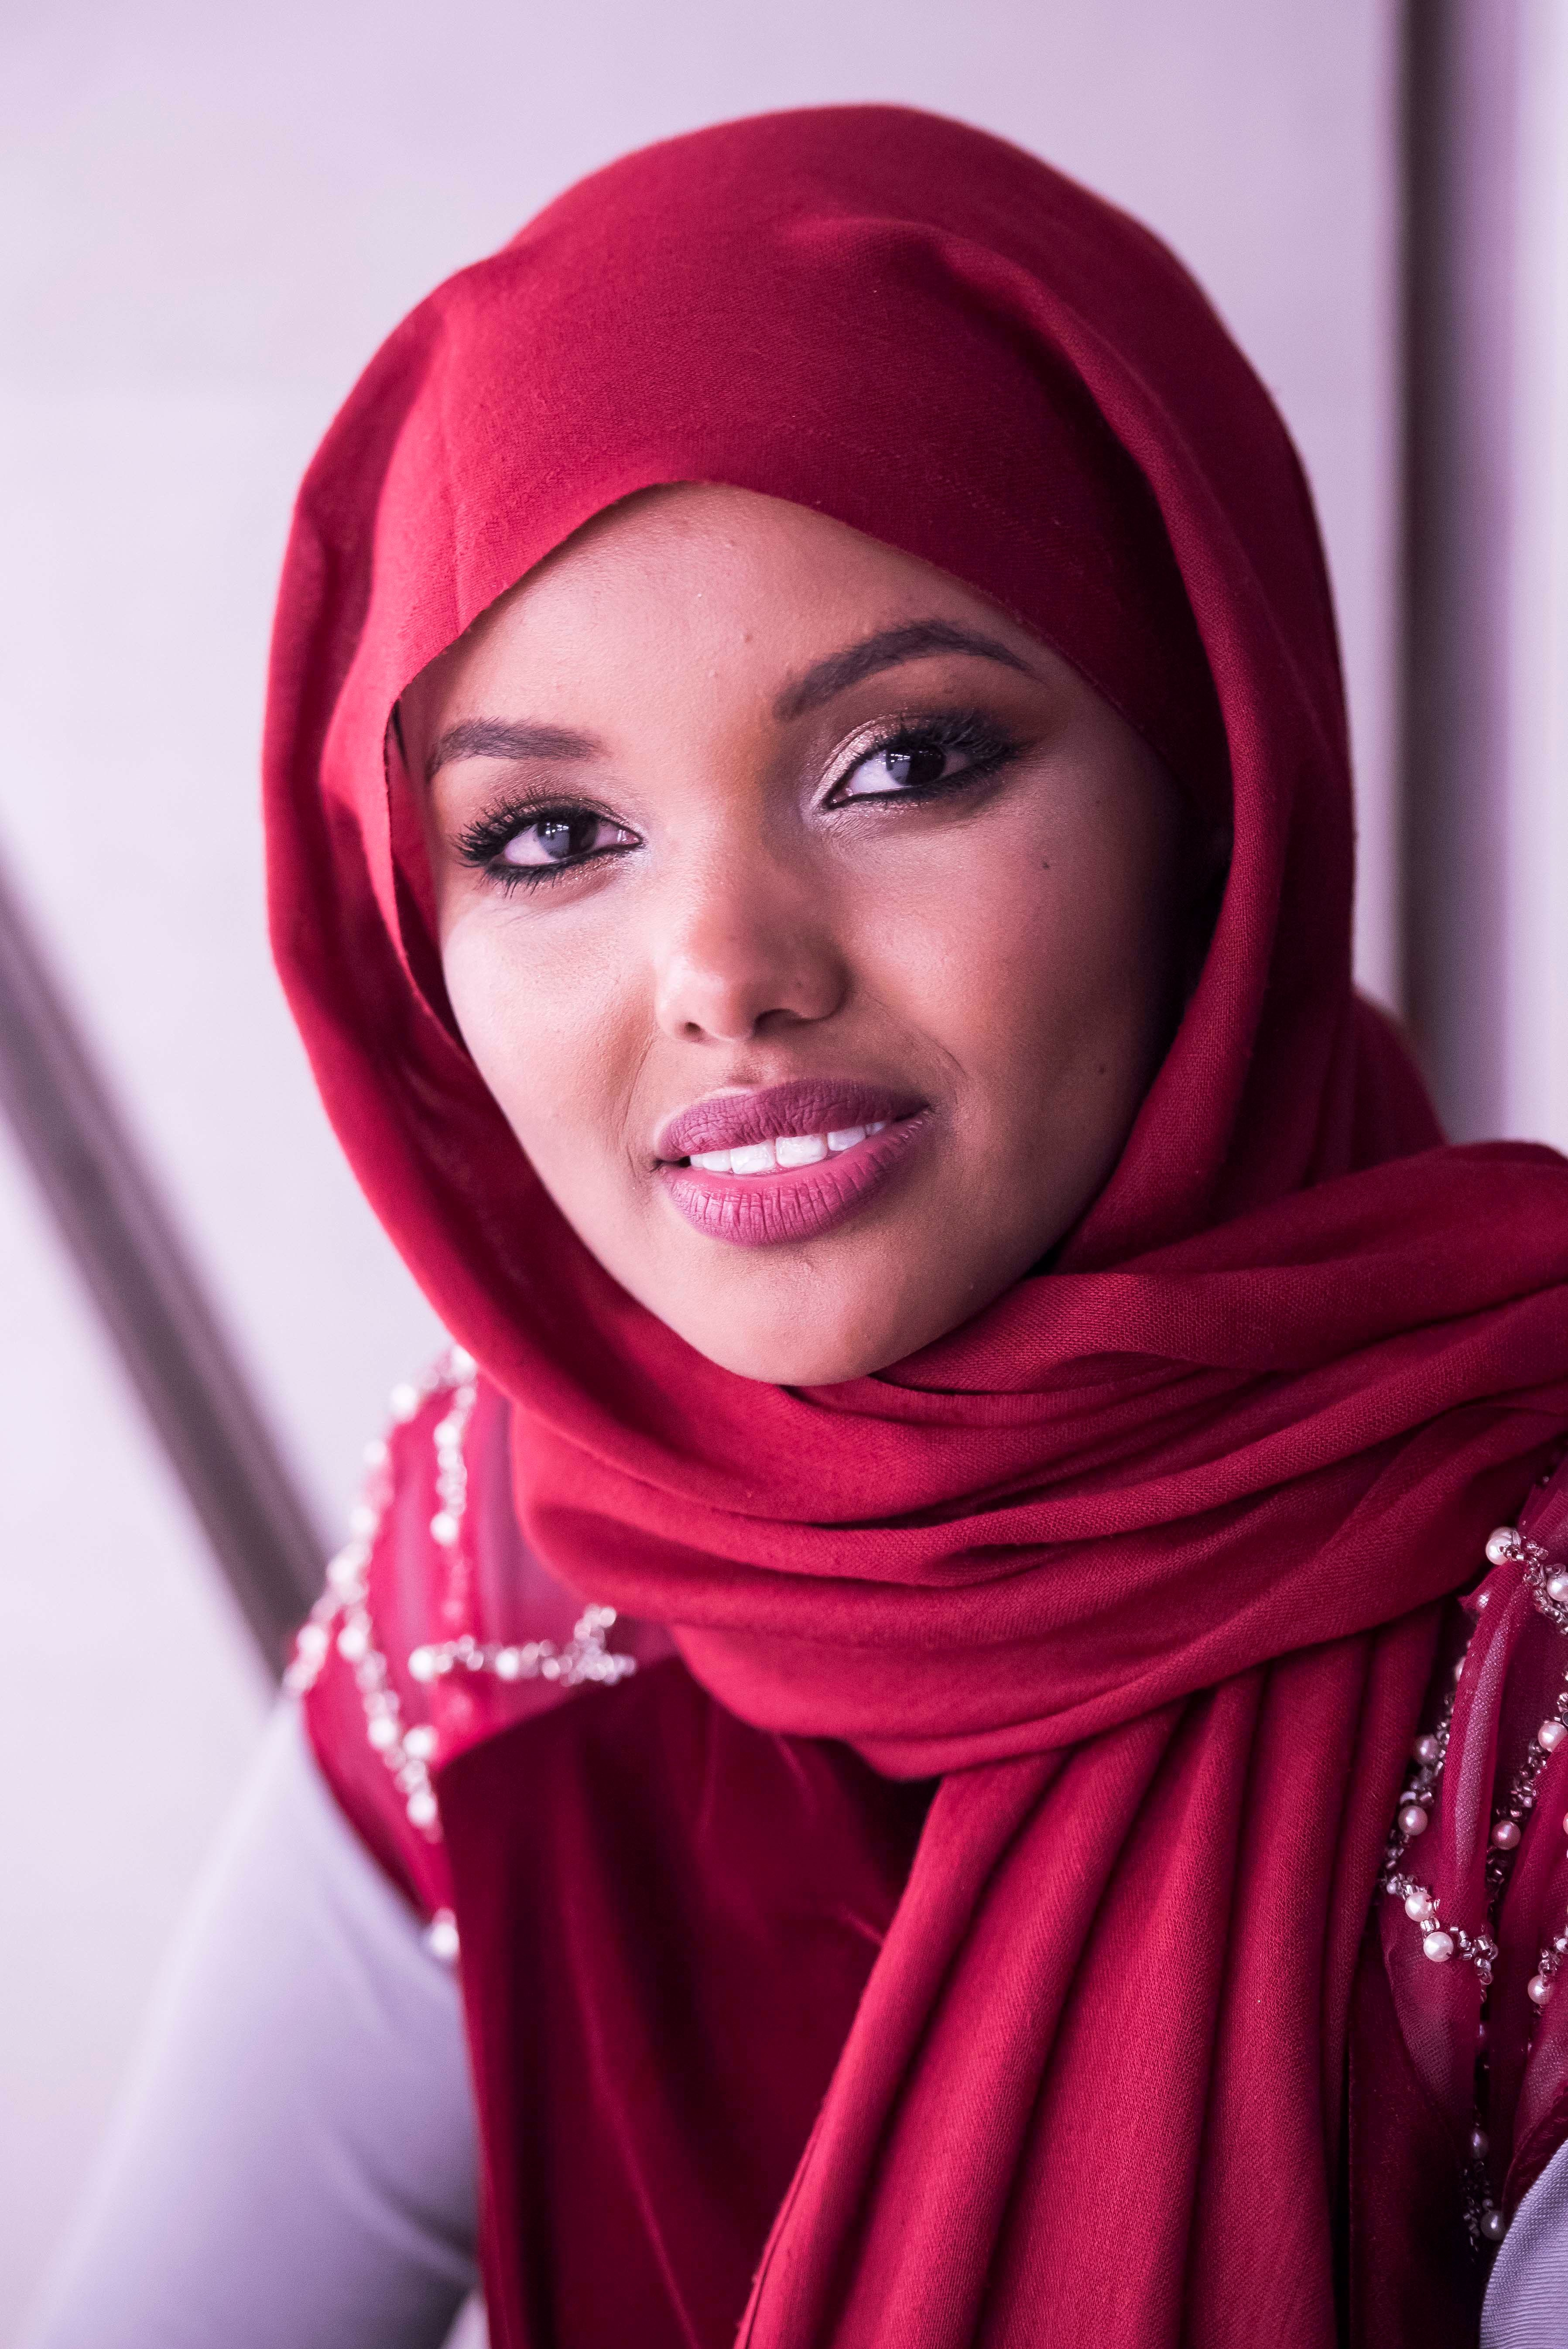 Halima Aden at the Modest Fashion Festival at the Grosvenor House Hotel, London on Saturday 21 October